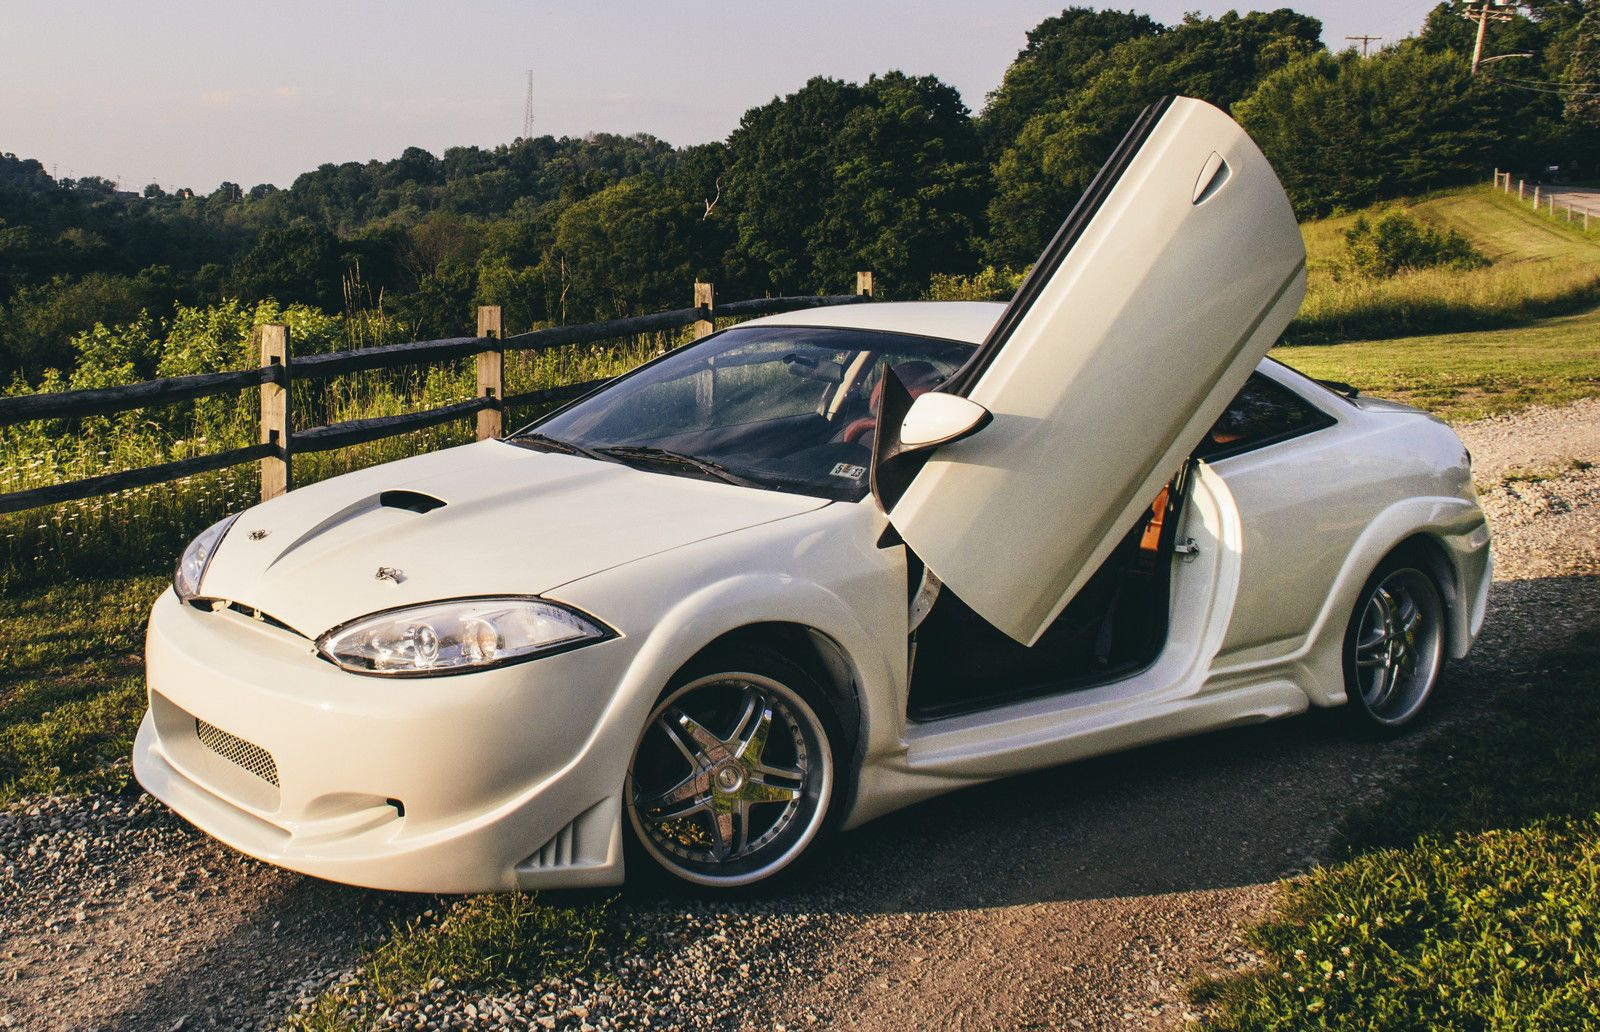 1999 mercury cougar custom click to find out more http newmusclecars